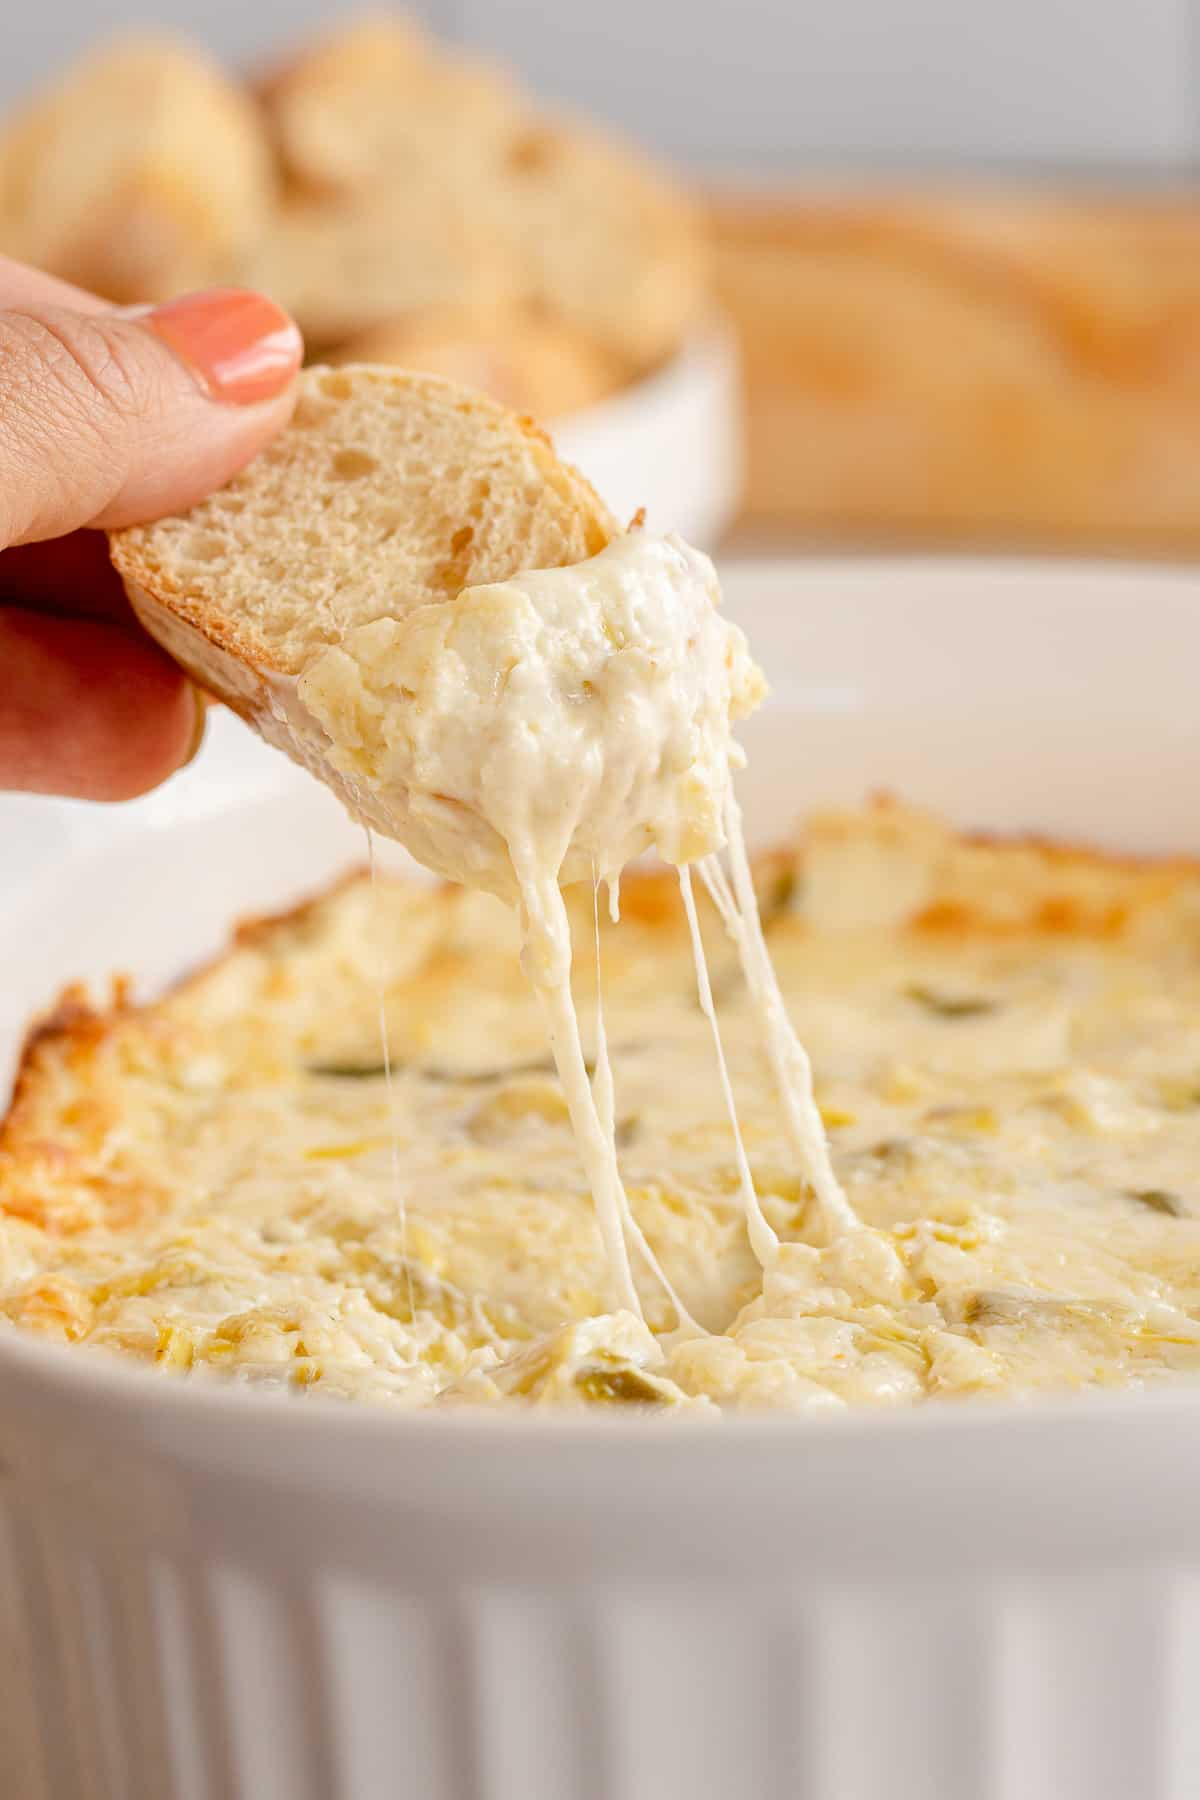 A hand dips a slice of bread into a cheesy dip.